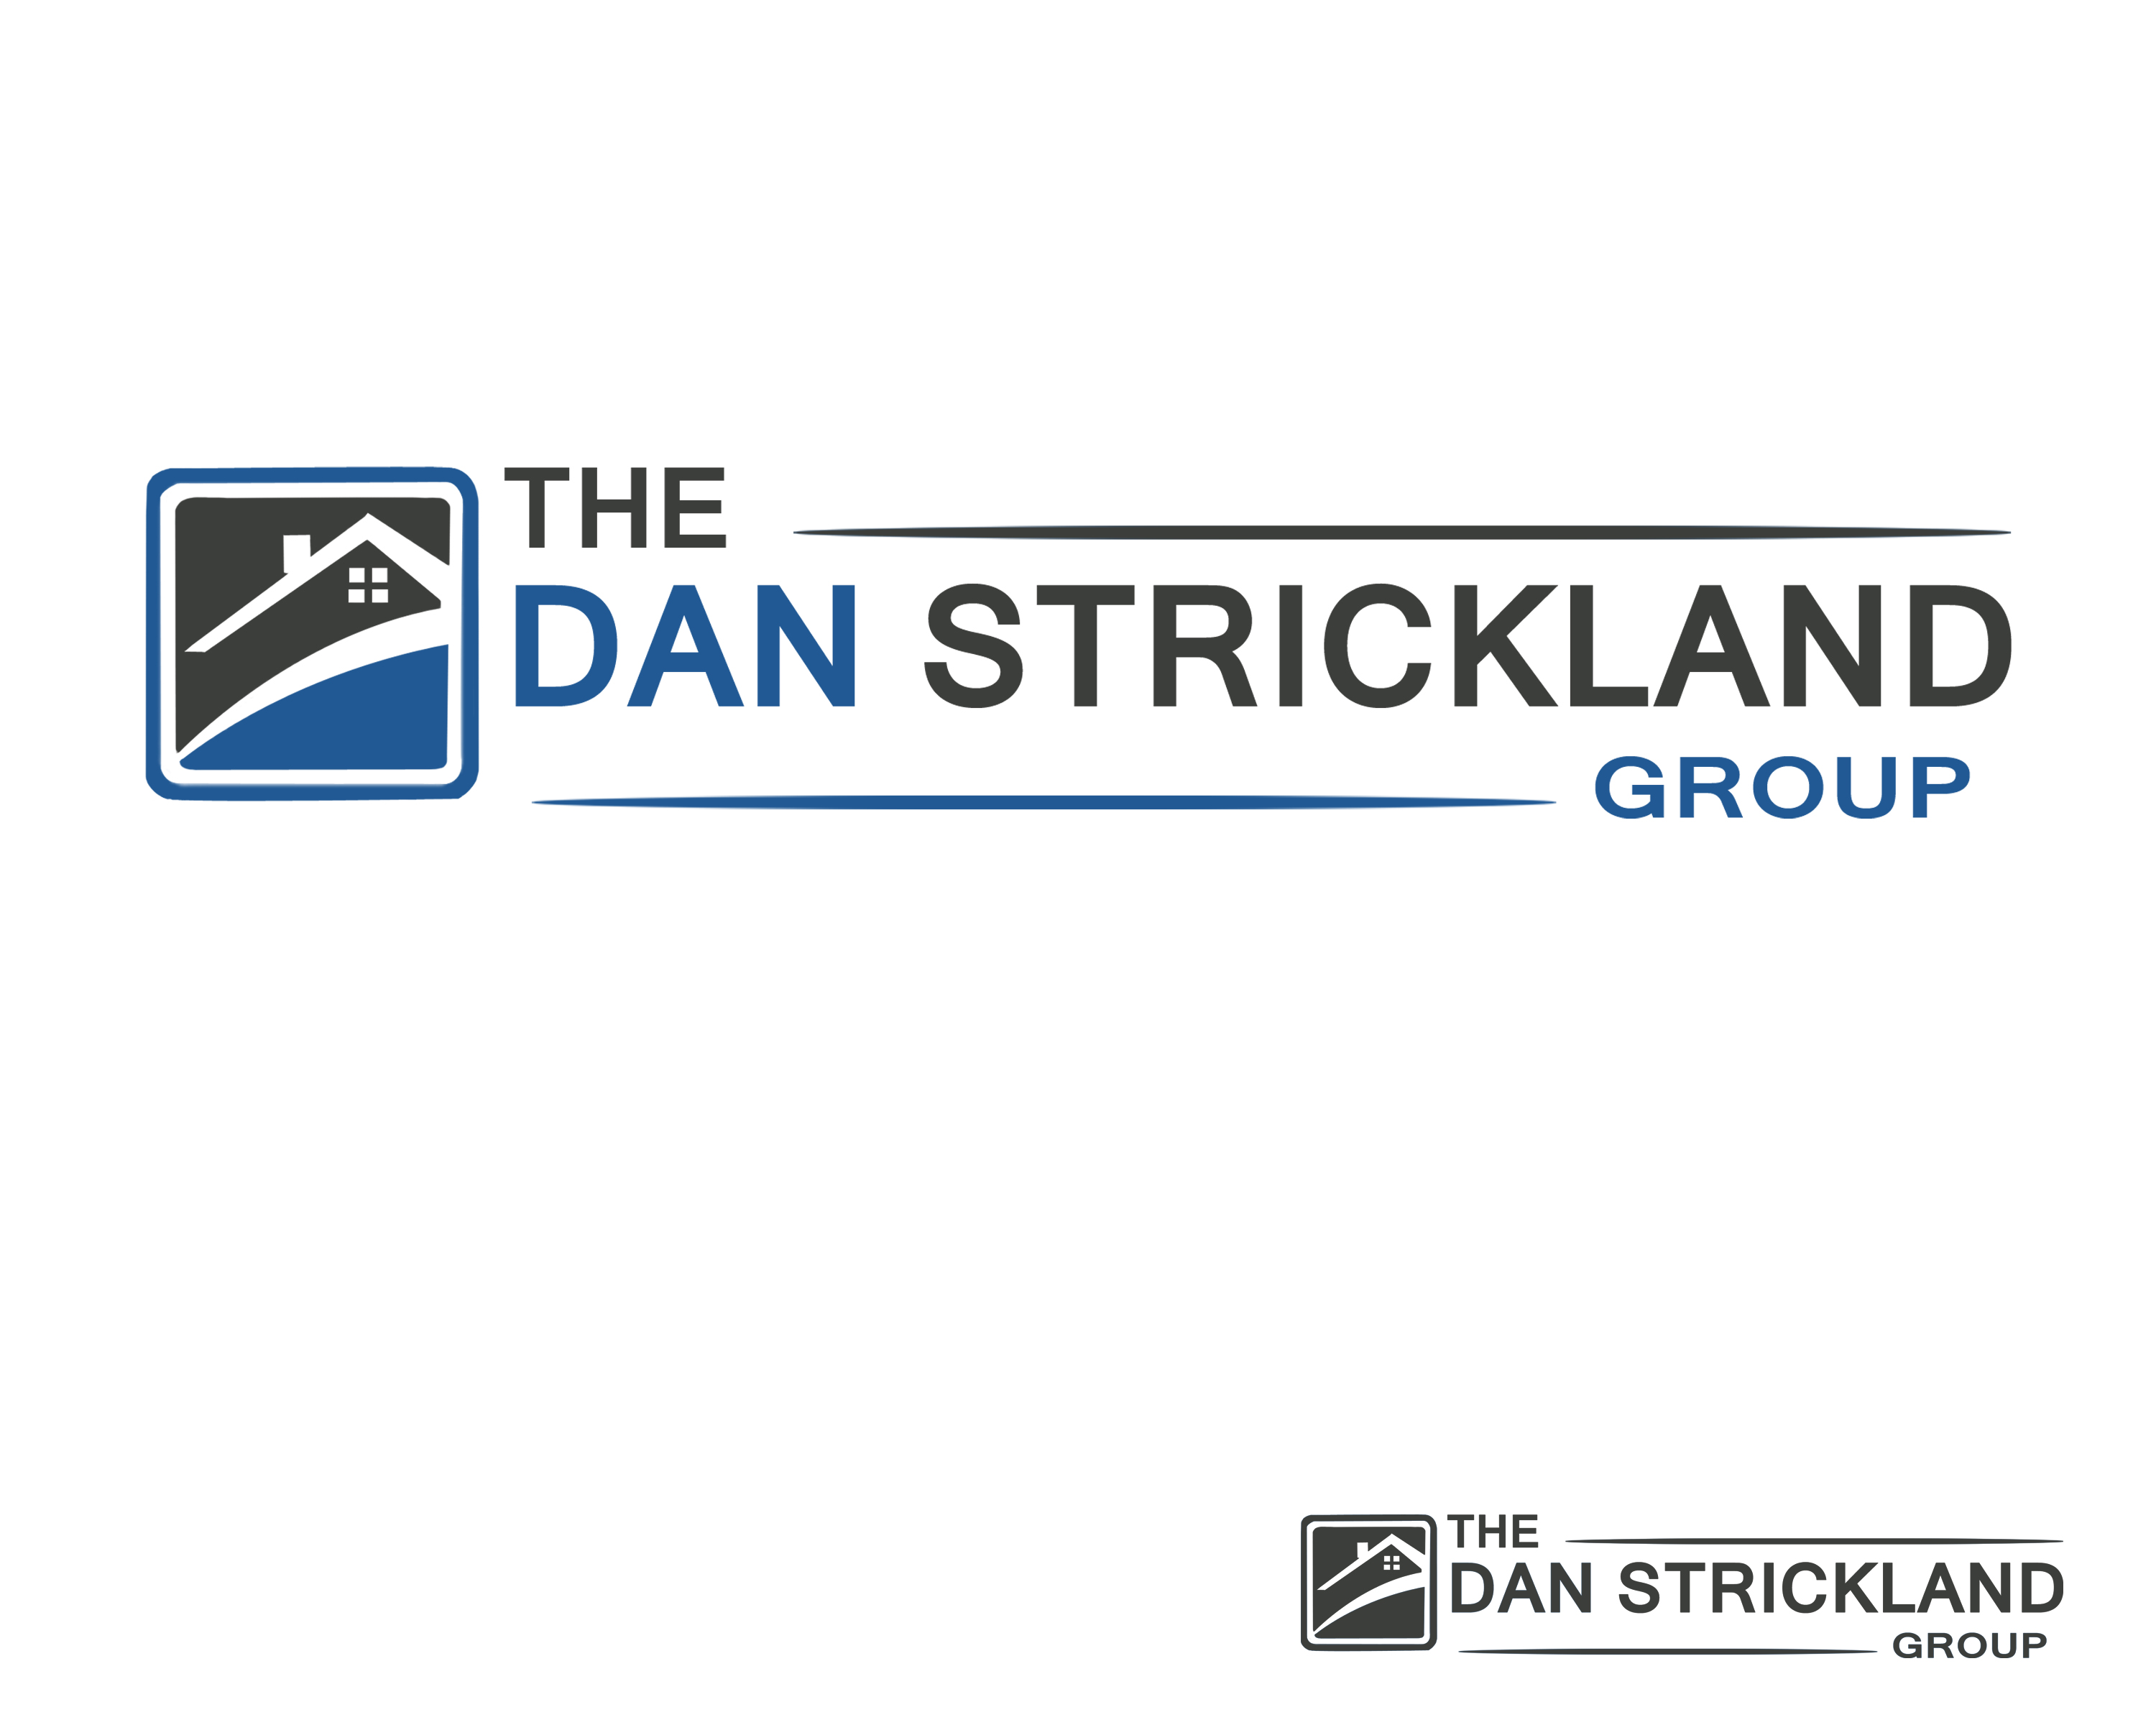 Logo Design by Jack Rajgor - Entry No. 367 in the Logo Design Contest Creative Logo Design for The Dan Strickland Group.